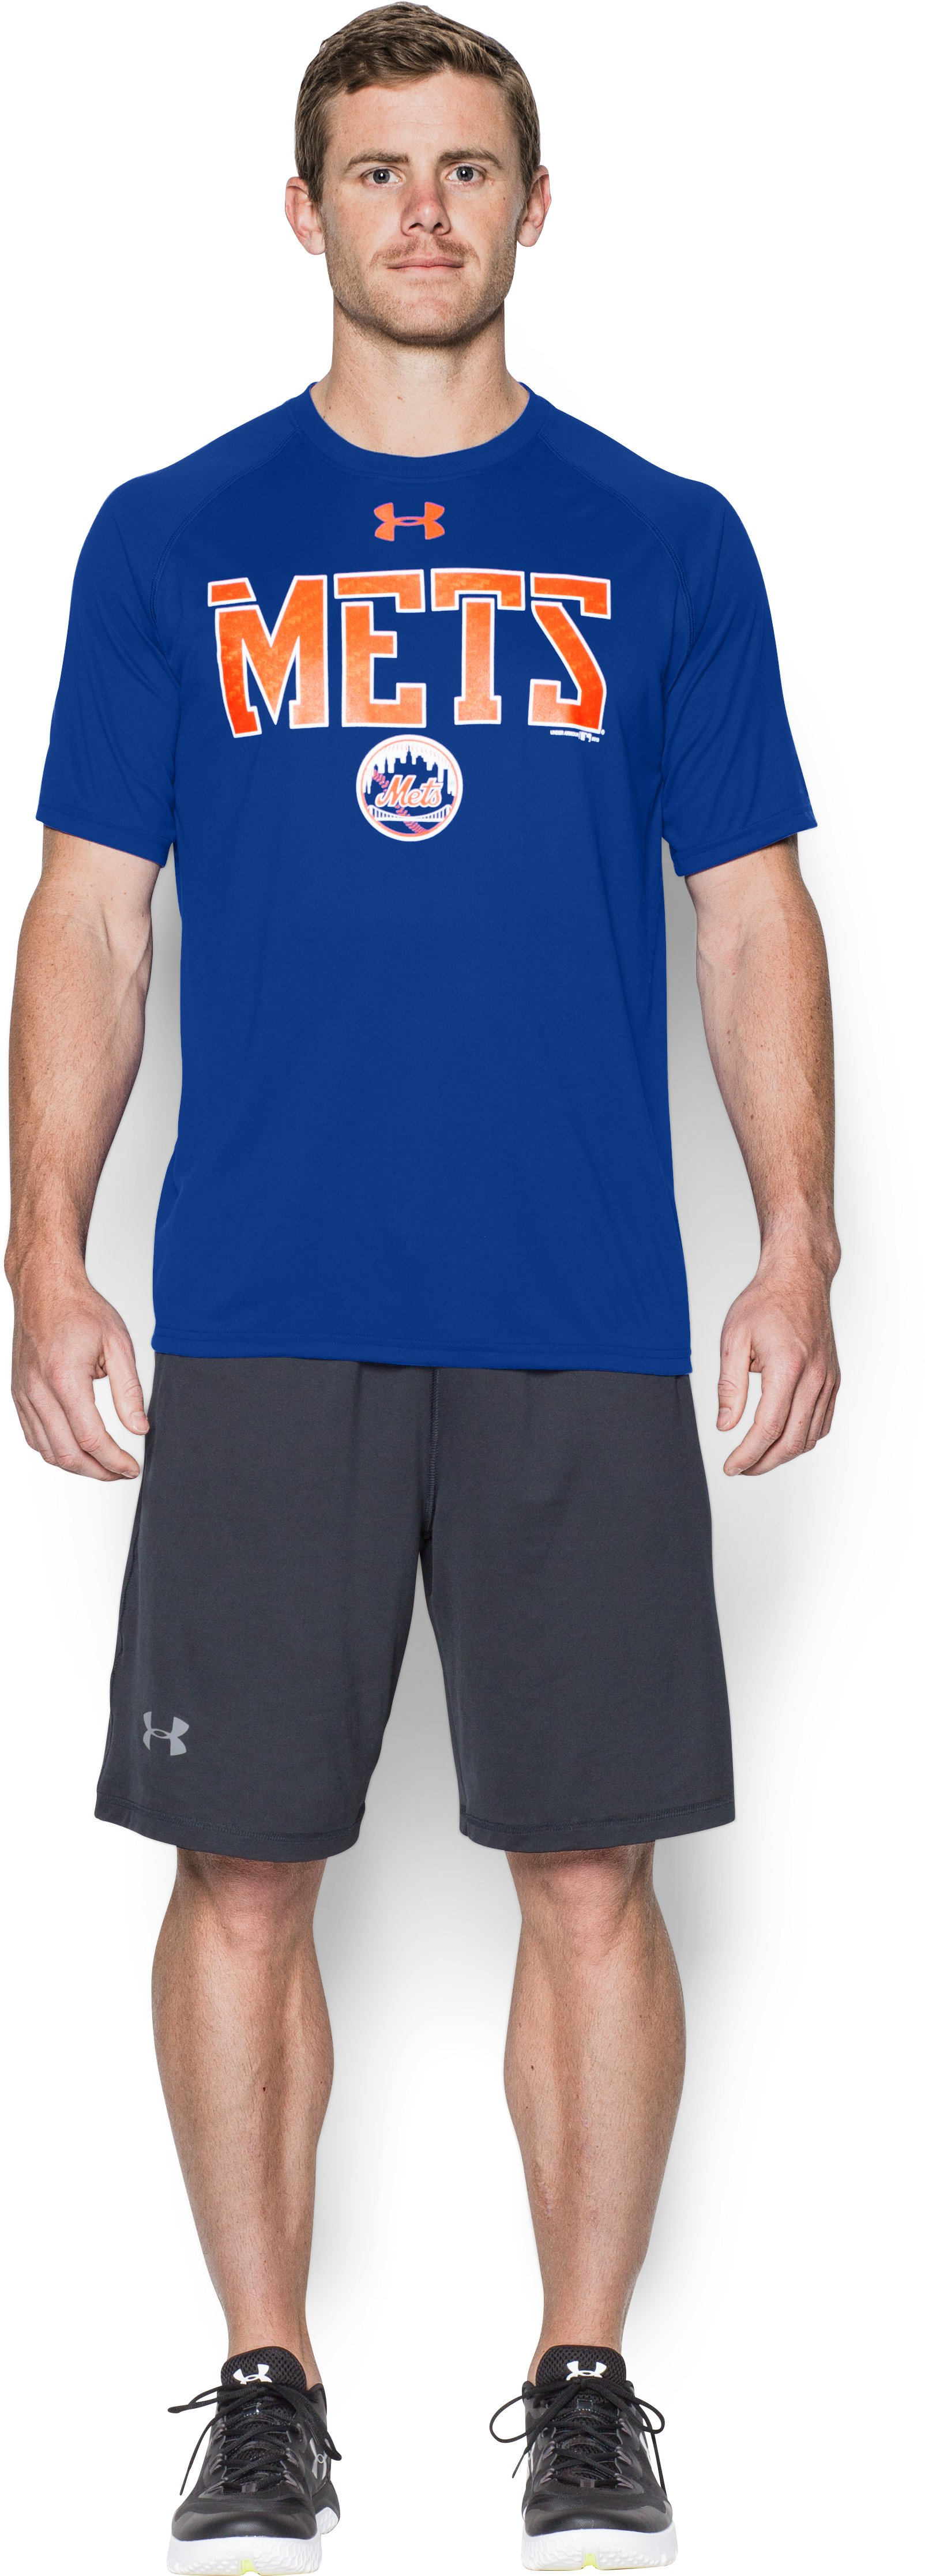 Men's New York Mets Team Tech™ T-Shirt, Royal